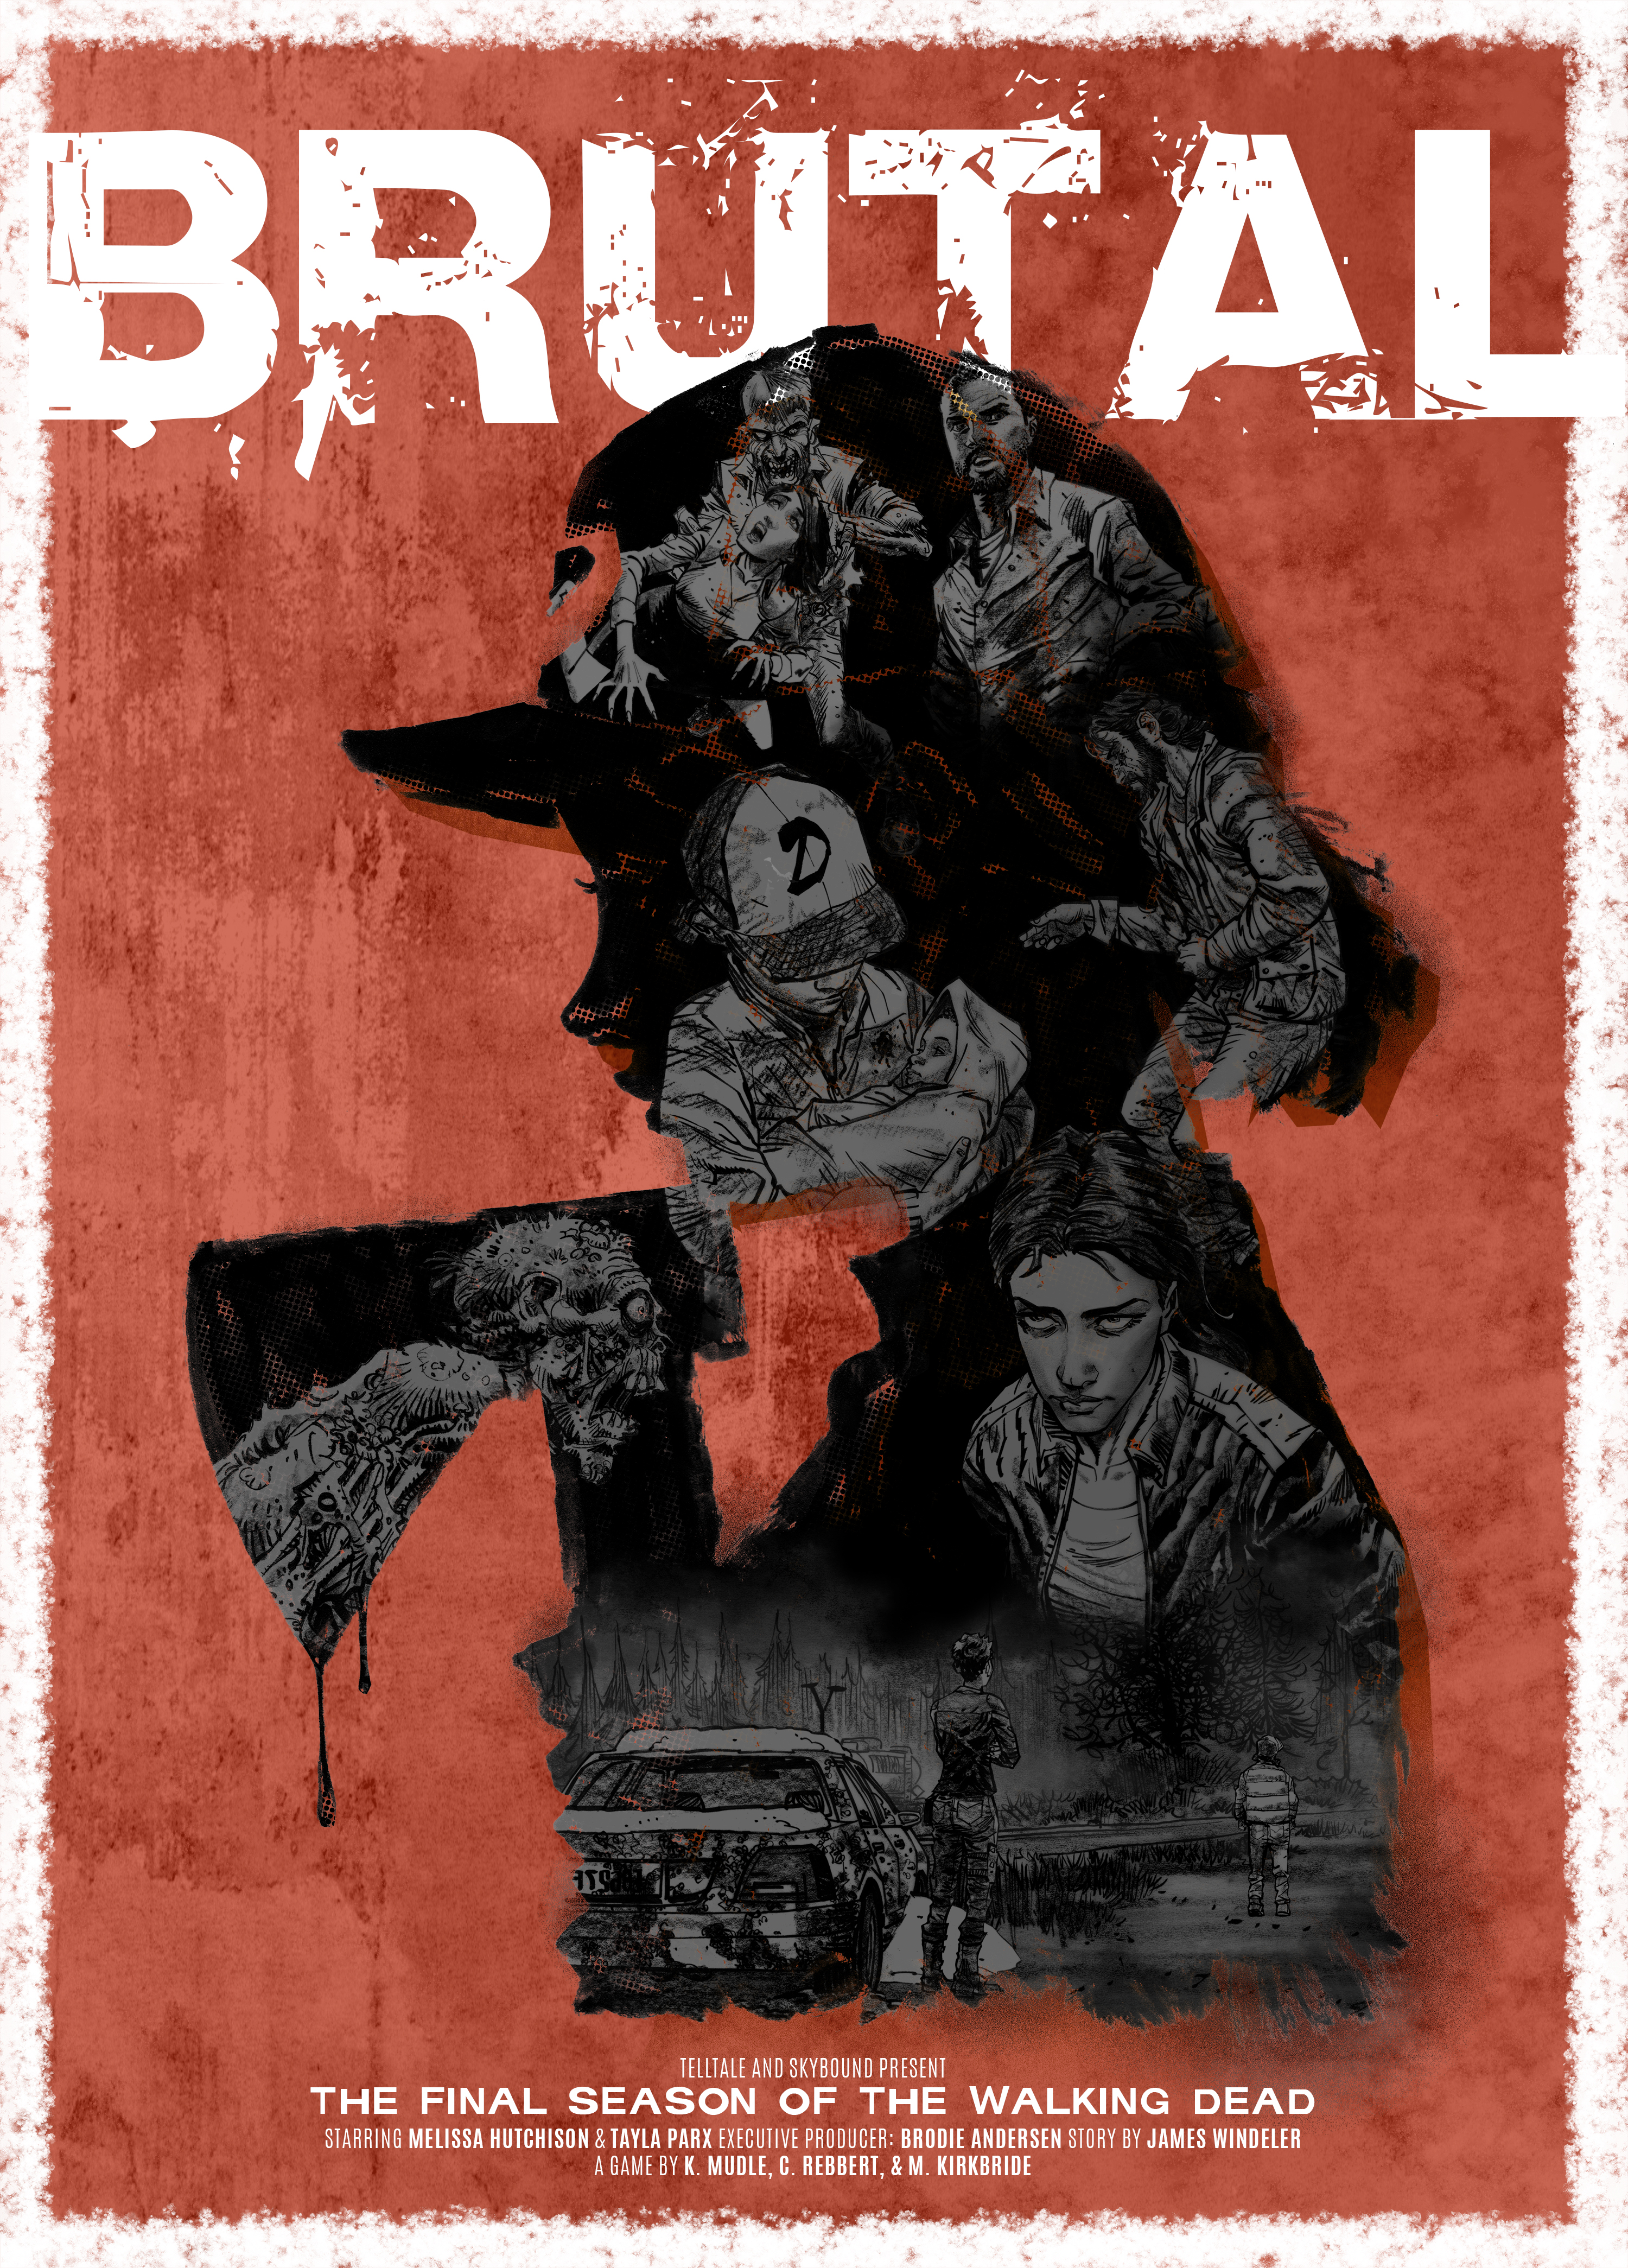 The Walking Dead - choice poster